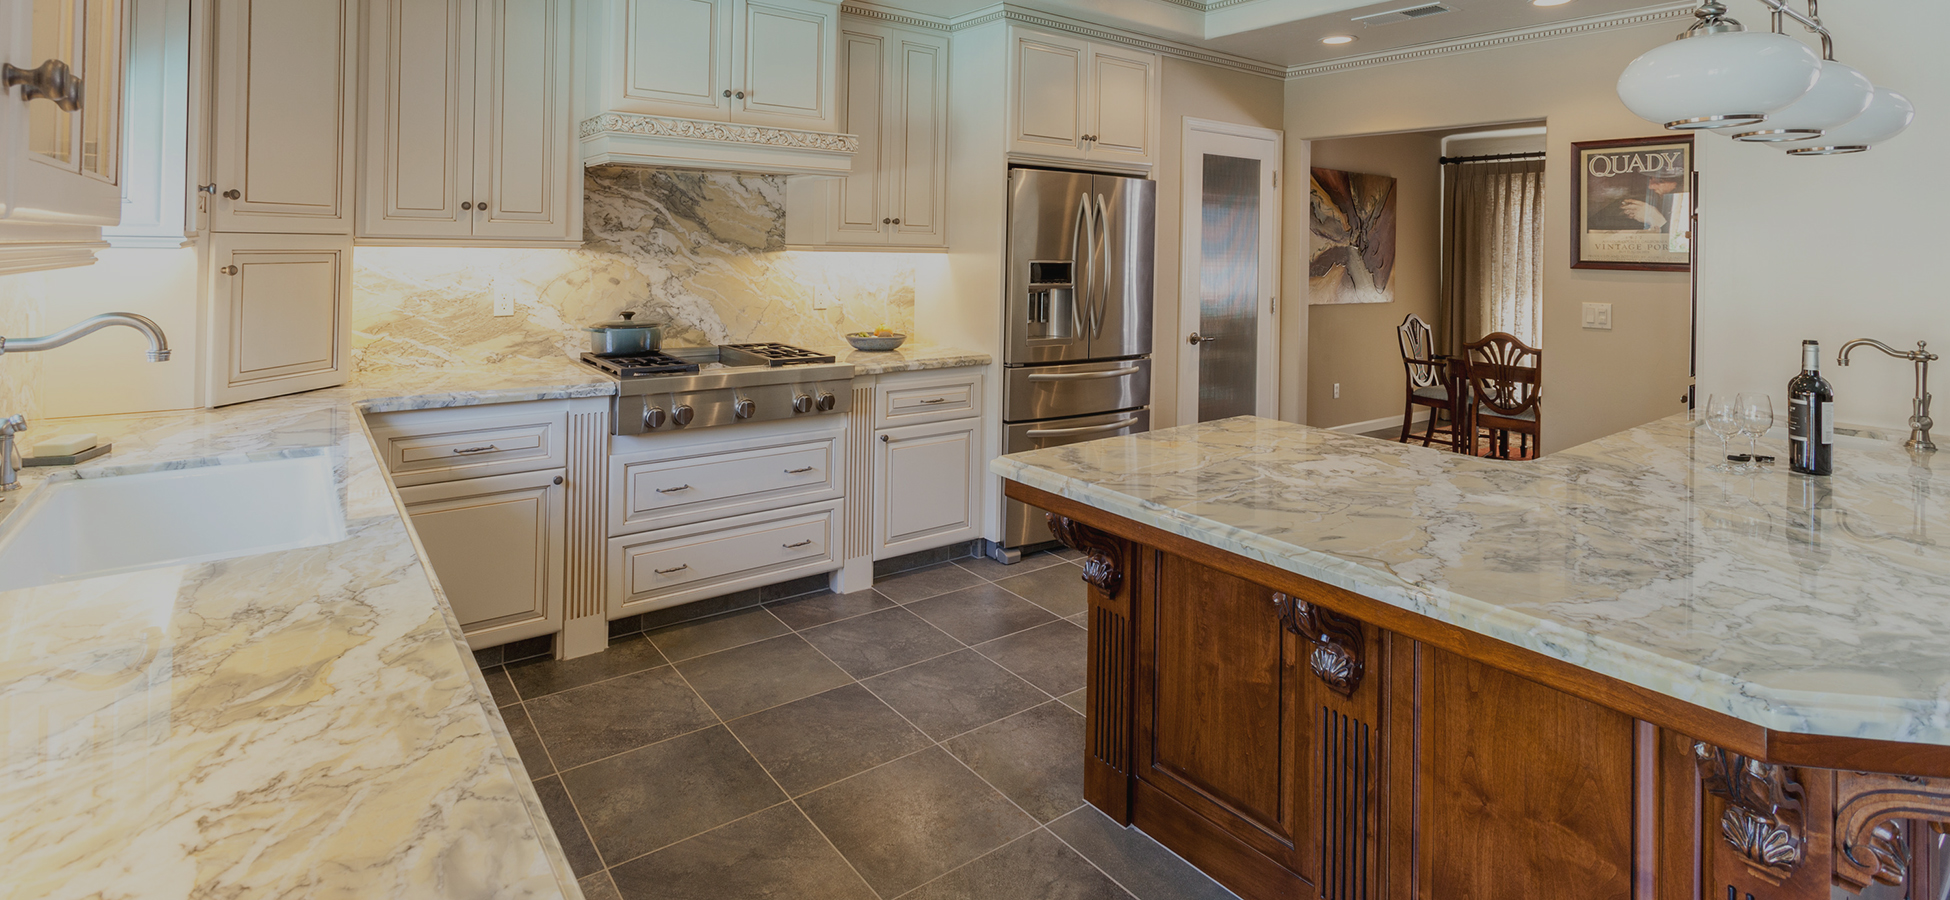 Best Price For Countertops Granite Countertops Wilkes Barre Pa Best Price And Quality